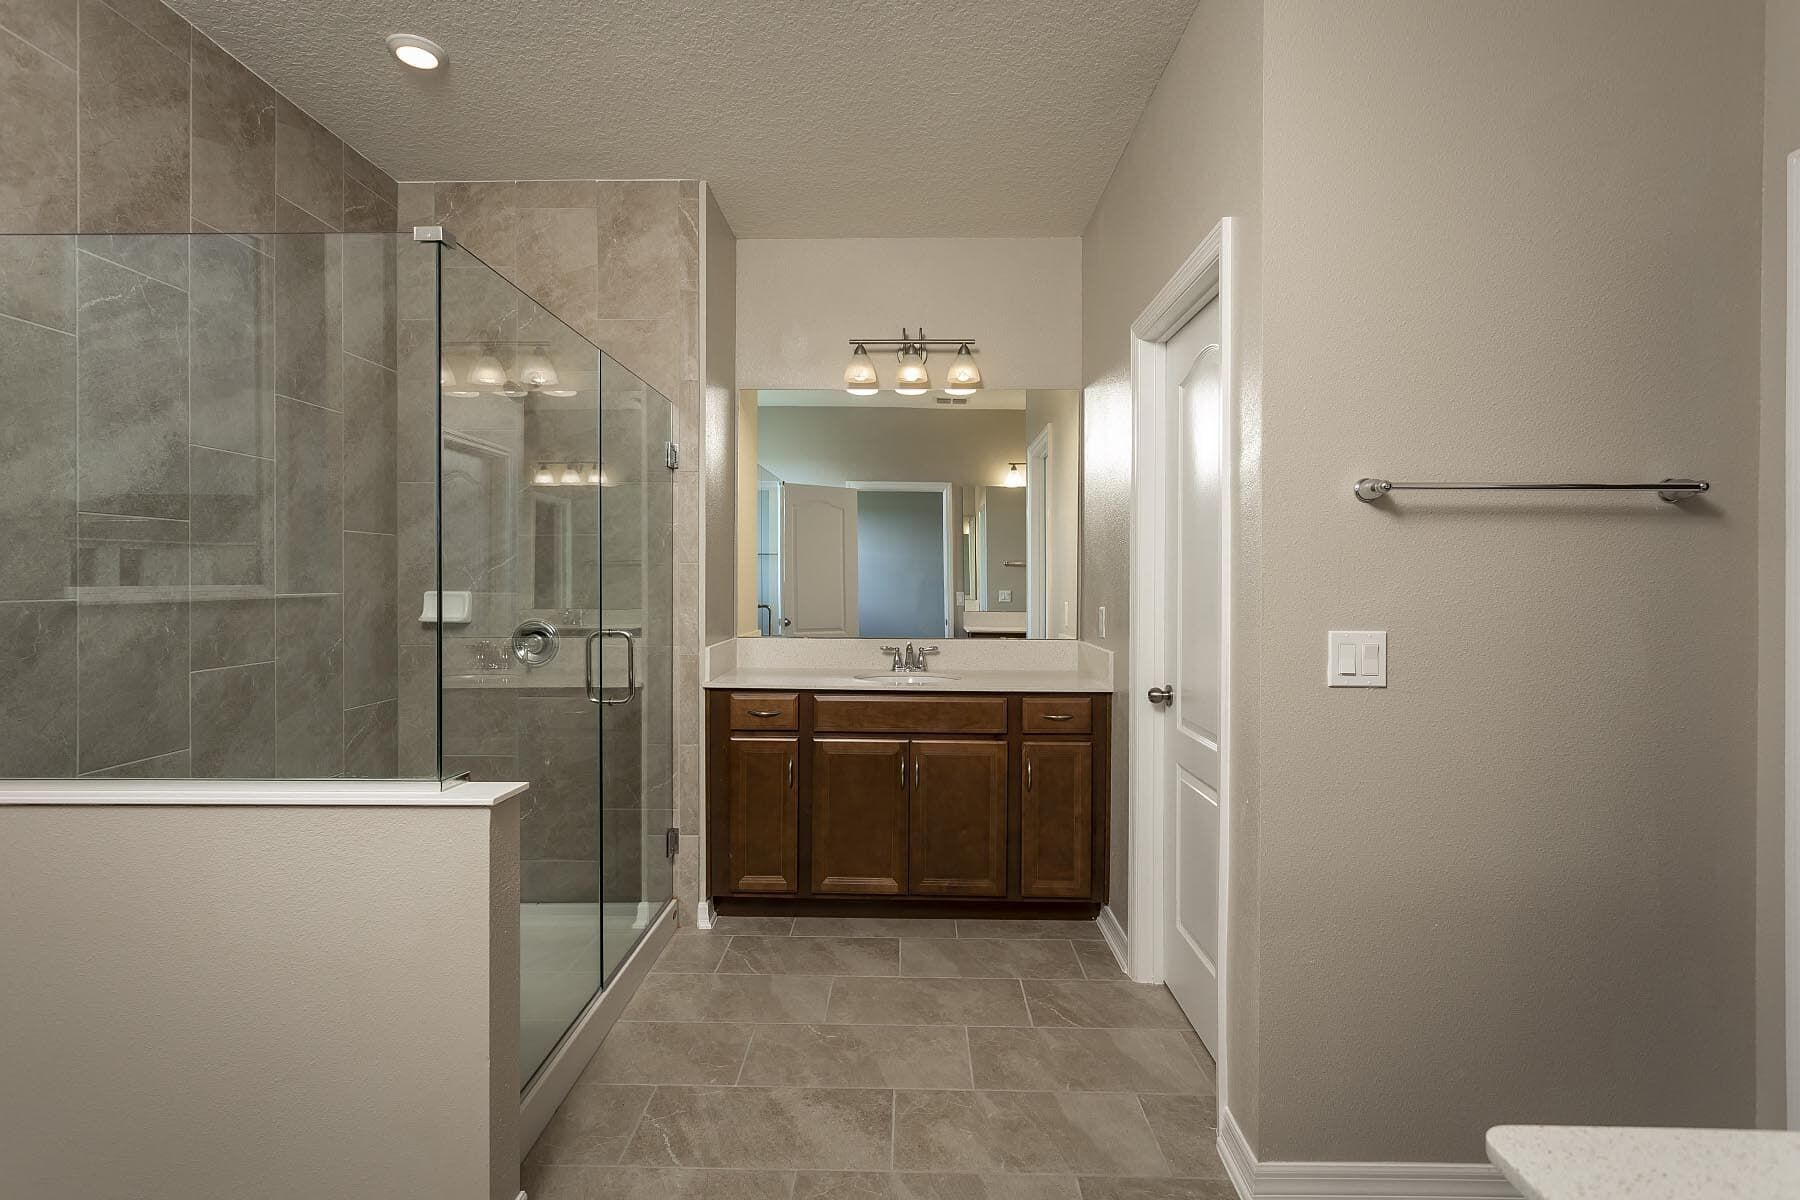 Bathroom featured in the Halifax By M/I Homes in Orlando, FL